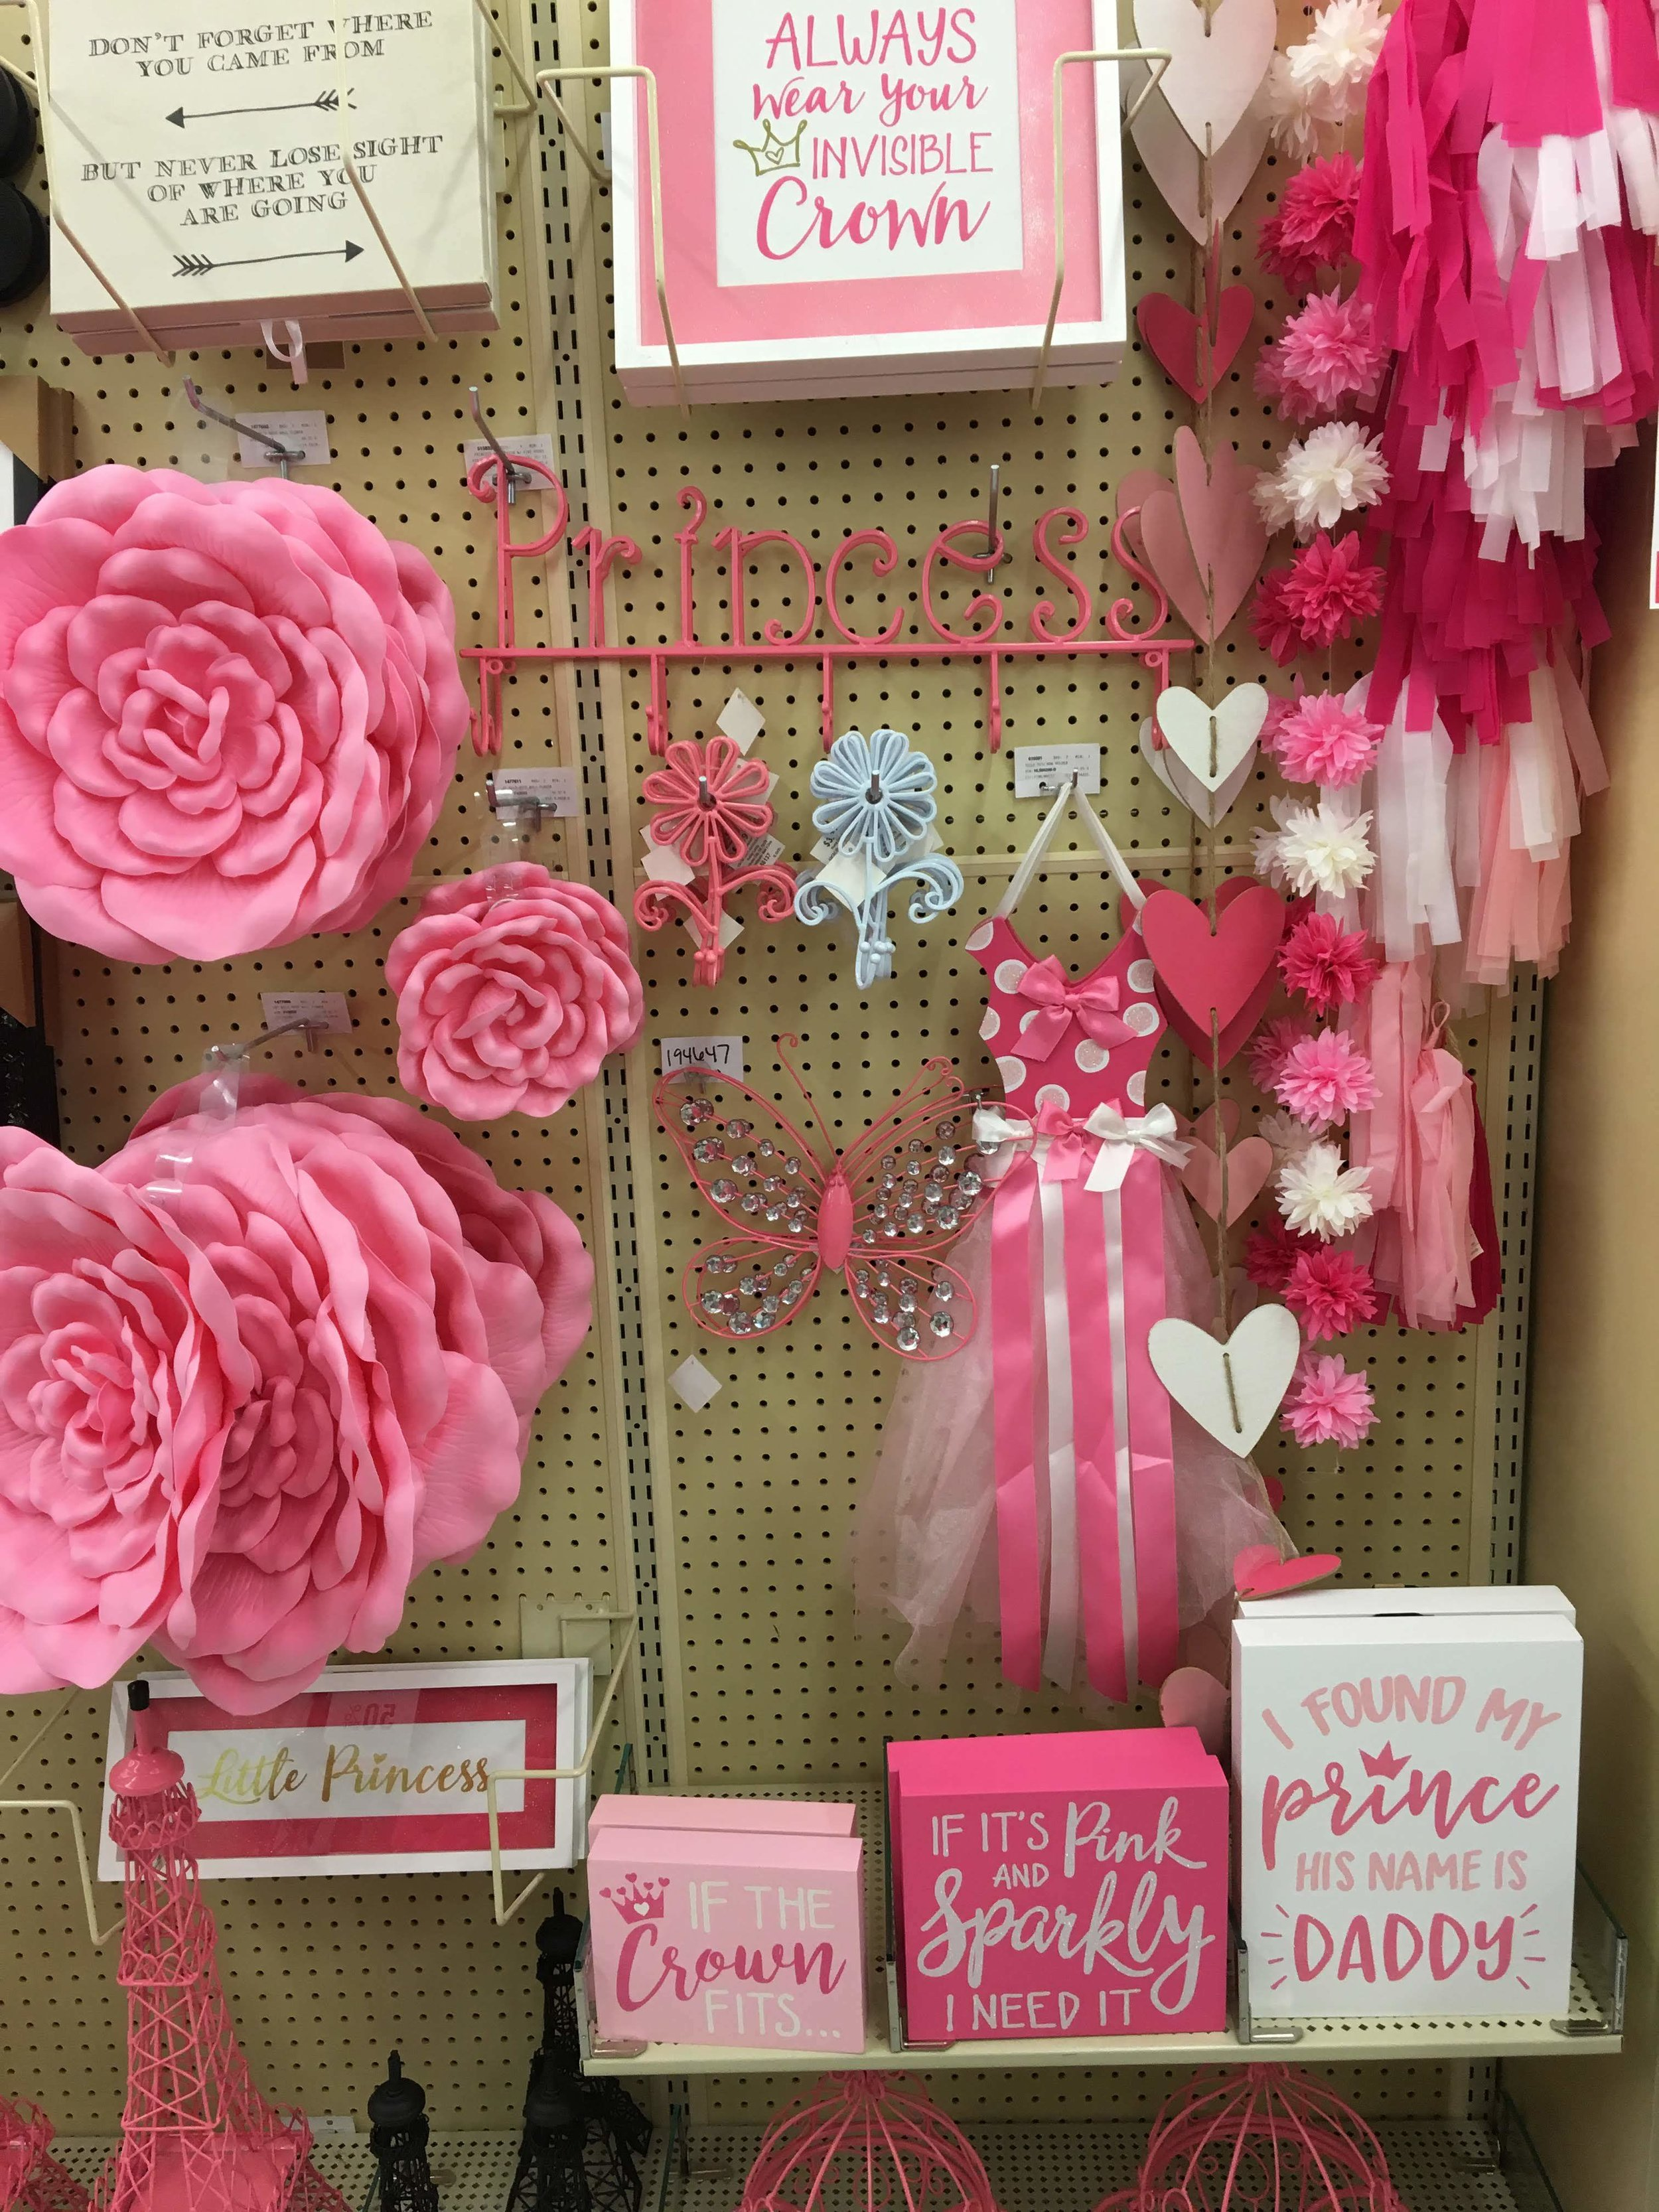 girly-room-decor-hobby-lobby.jpg